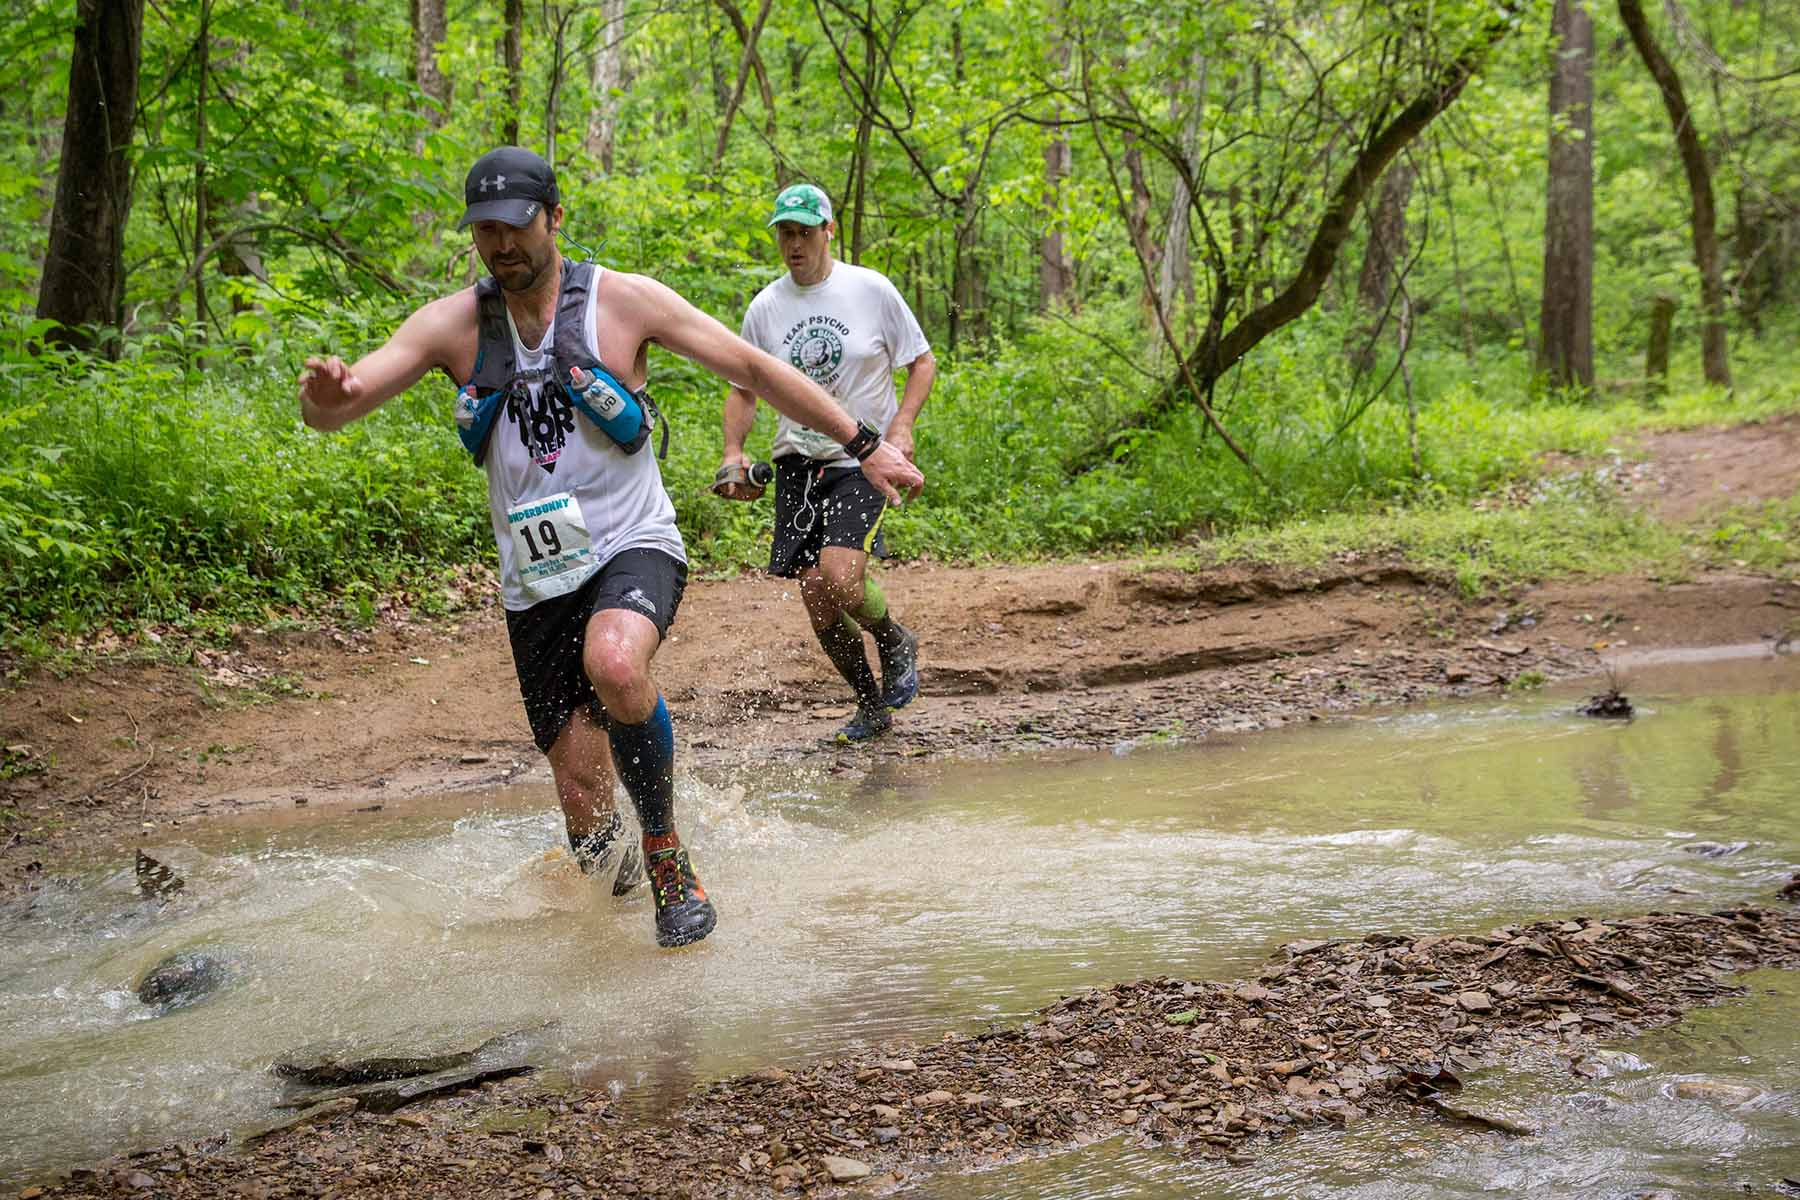 Photographs of the 2016 Thunderbunny 50k Ultramarathon. This was the first ultramarathon to be held in Athens County. The Thunderbunny 50k also featured a 25k and a 12k event on May 14, 2016